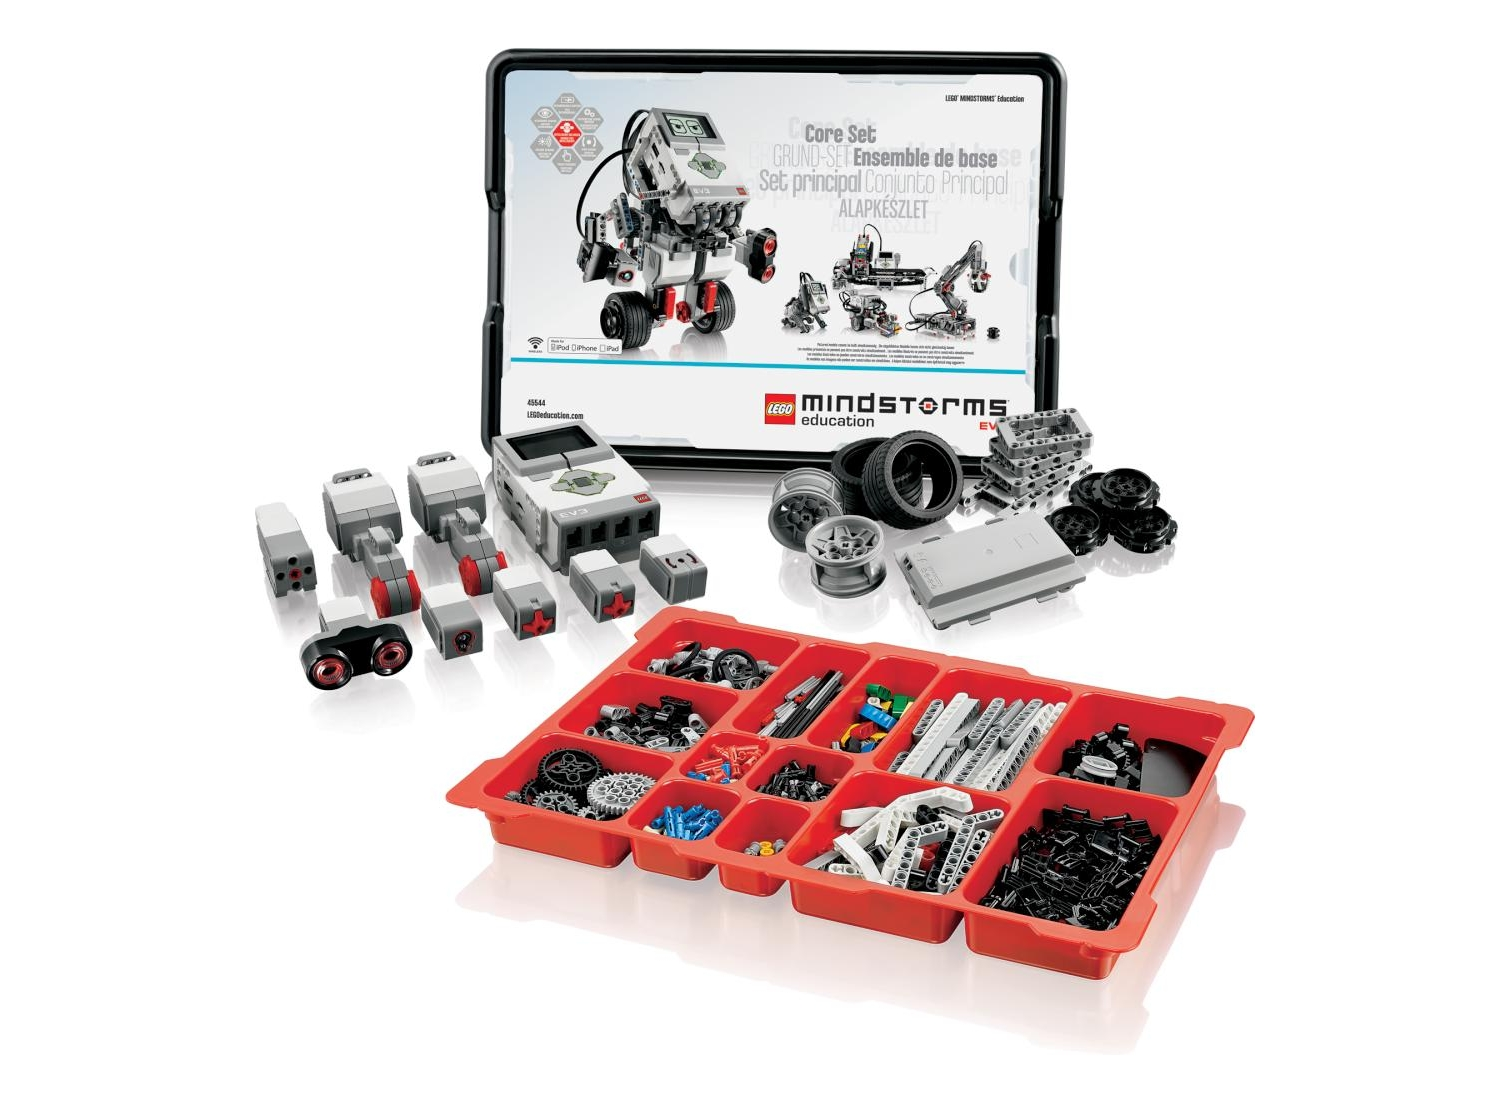 parrot ar 2 0 drone with Lego Mindstorms Ev3 Core Set Pagrindinis Rinkinys 45544 on Asteroid America as well 221 Bluetooth Plasma Speaker further Hexacopters Quadcopters And Octocopters What Is The Difference moreover Watch moreover Apple Neue Imacs Mit Quad Core Und Thunderbolt.